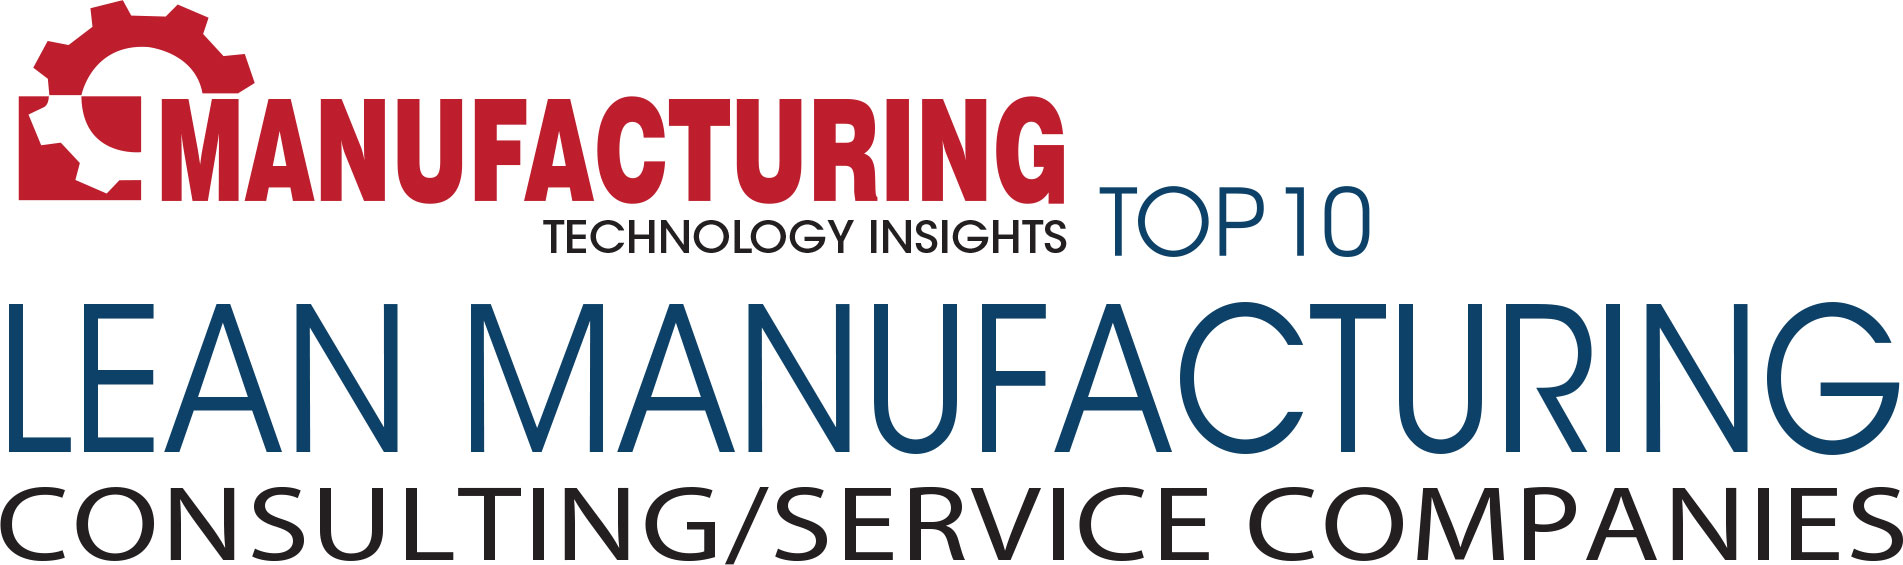 Top 10 Lean Manufacturing Consulting/Service Companies - 2019